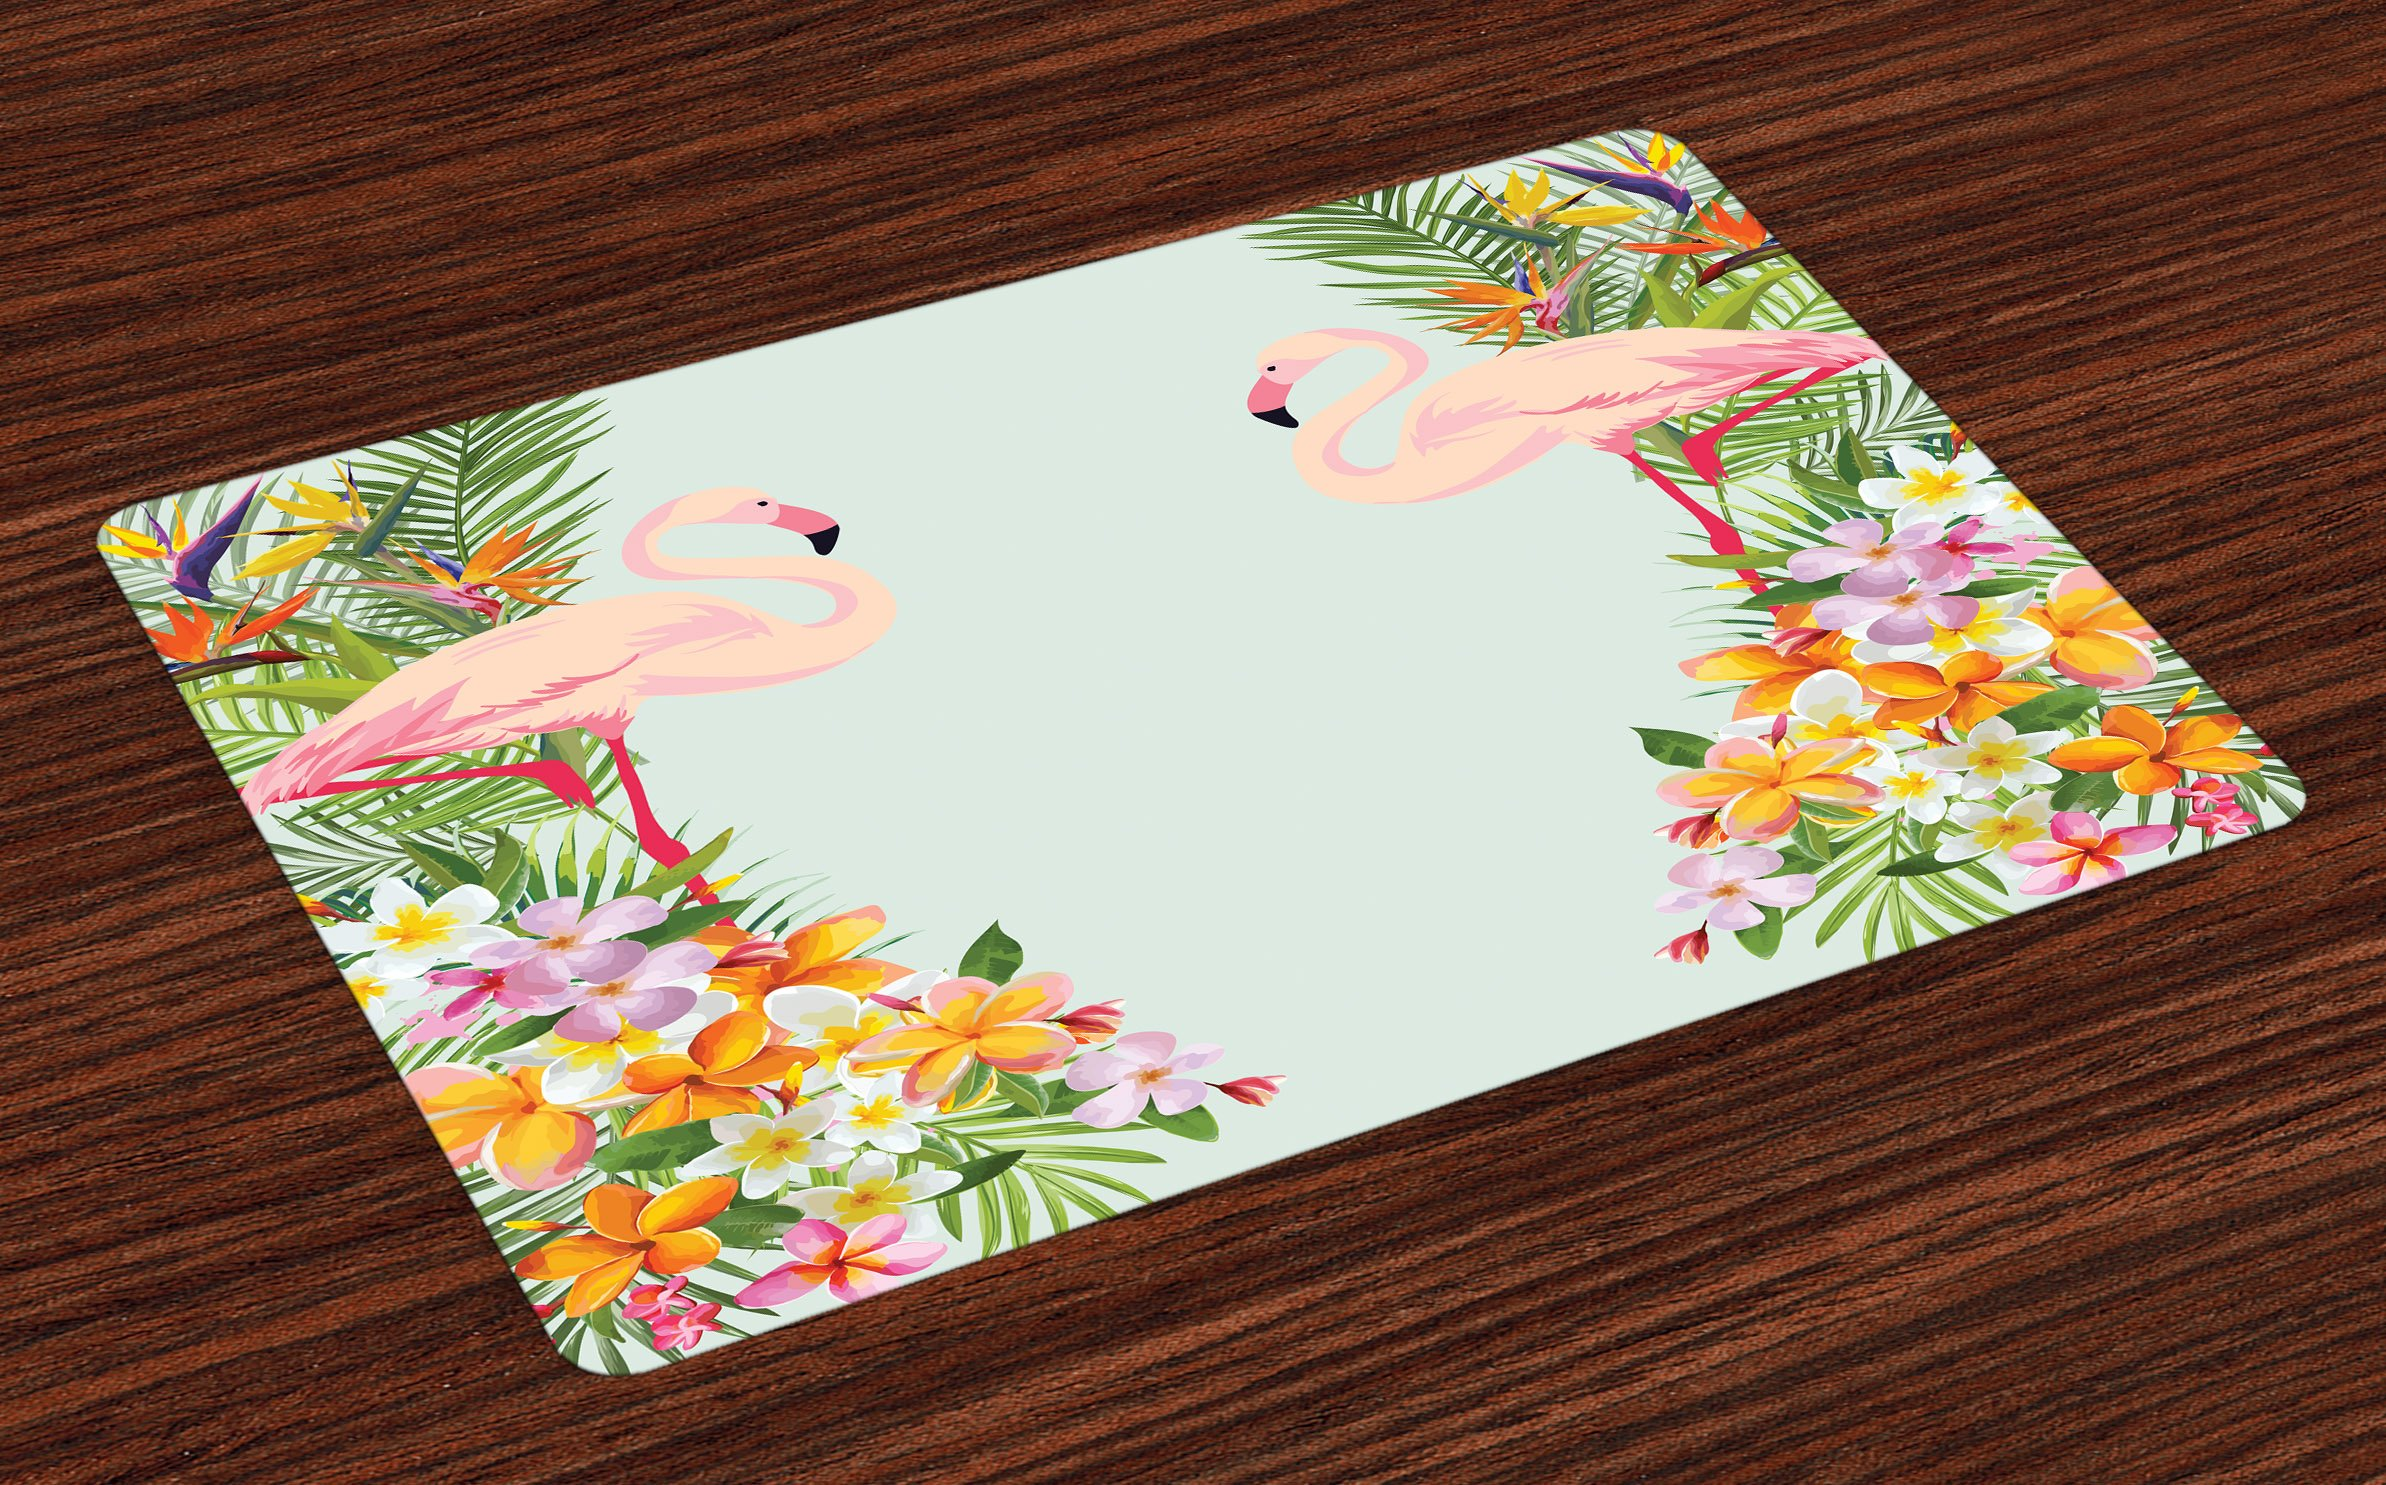 Ambesonne Floral Place Mats Set of 4, Flamingo Birds and Tropical Flowers Exotic Hawaiian Wildlife Animals Print, Washable Fabric Placemats for Dining Room Kitchen Table Decor, Baby Blue and Orange by Ambesonne